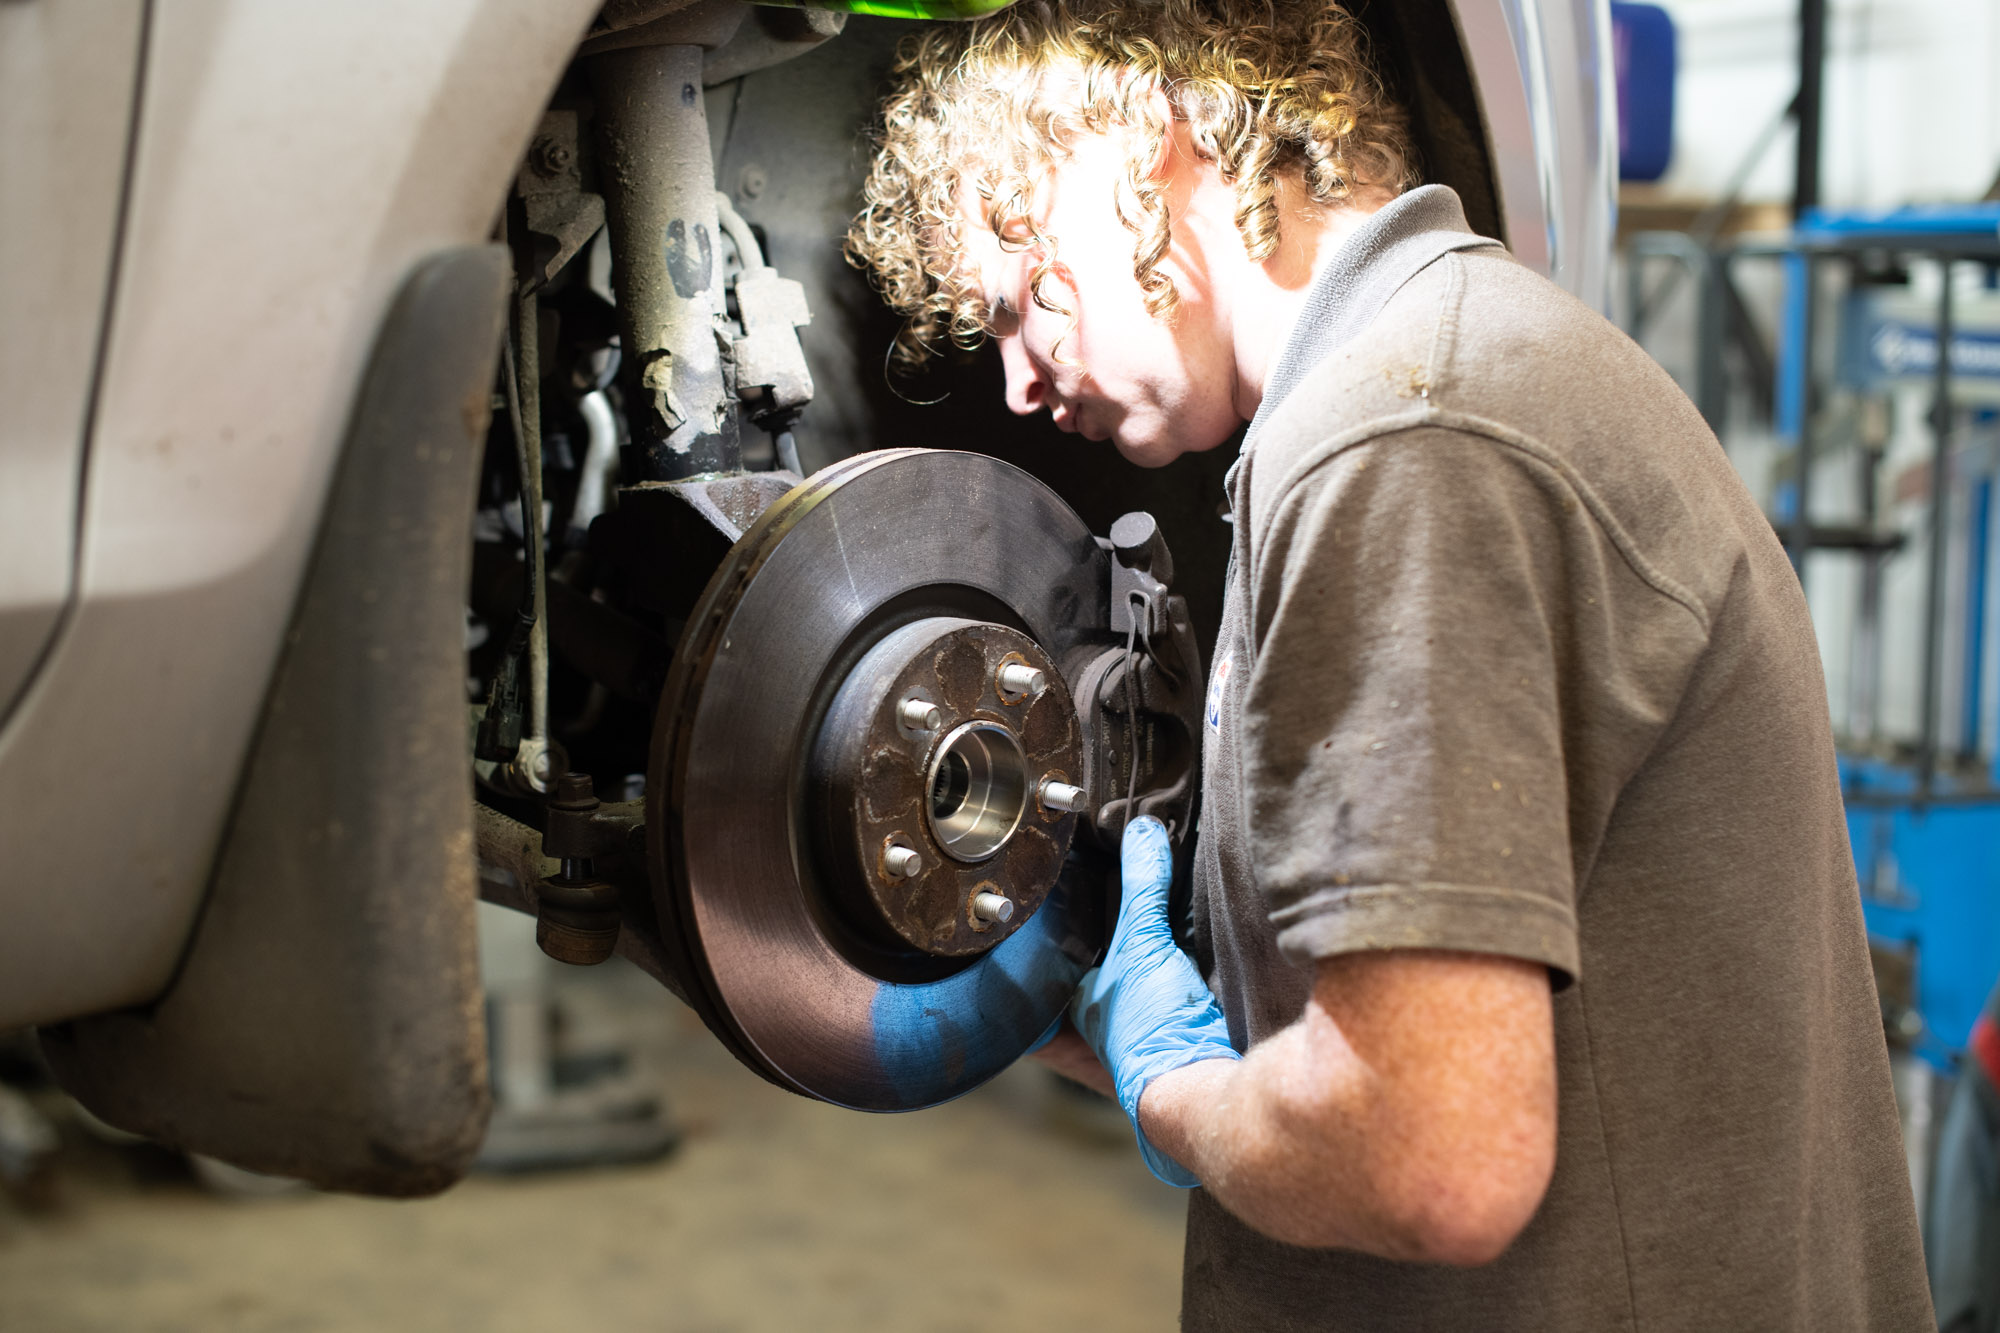 Brake repairs, replacements and servicing at Autotechnics Blandford